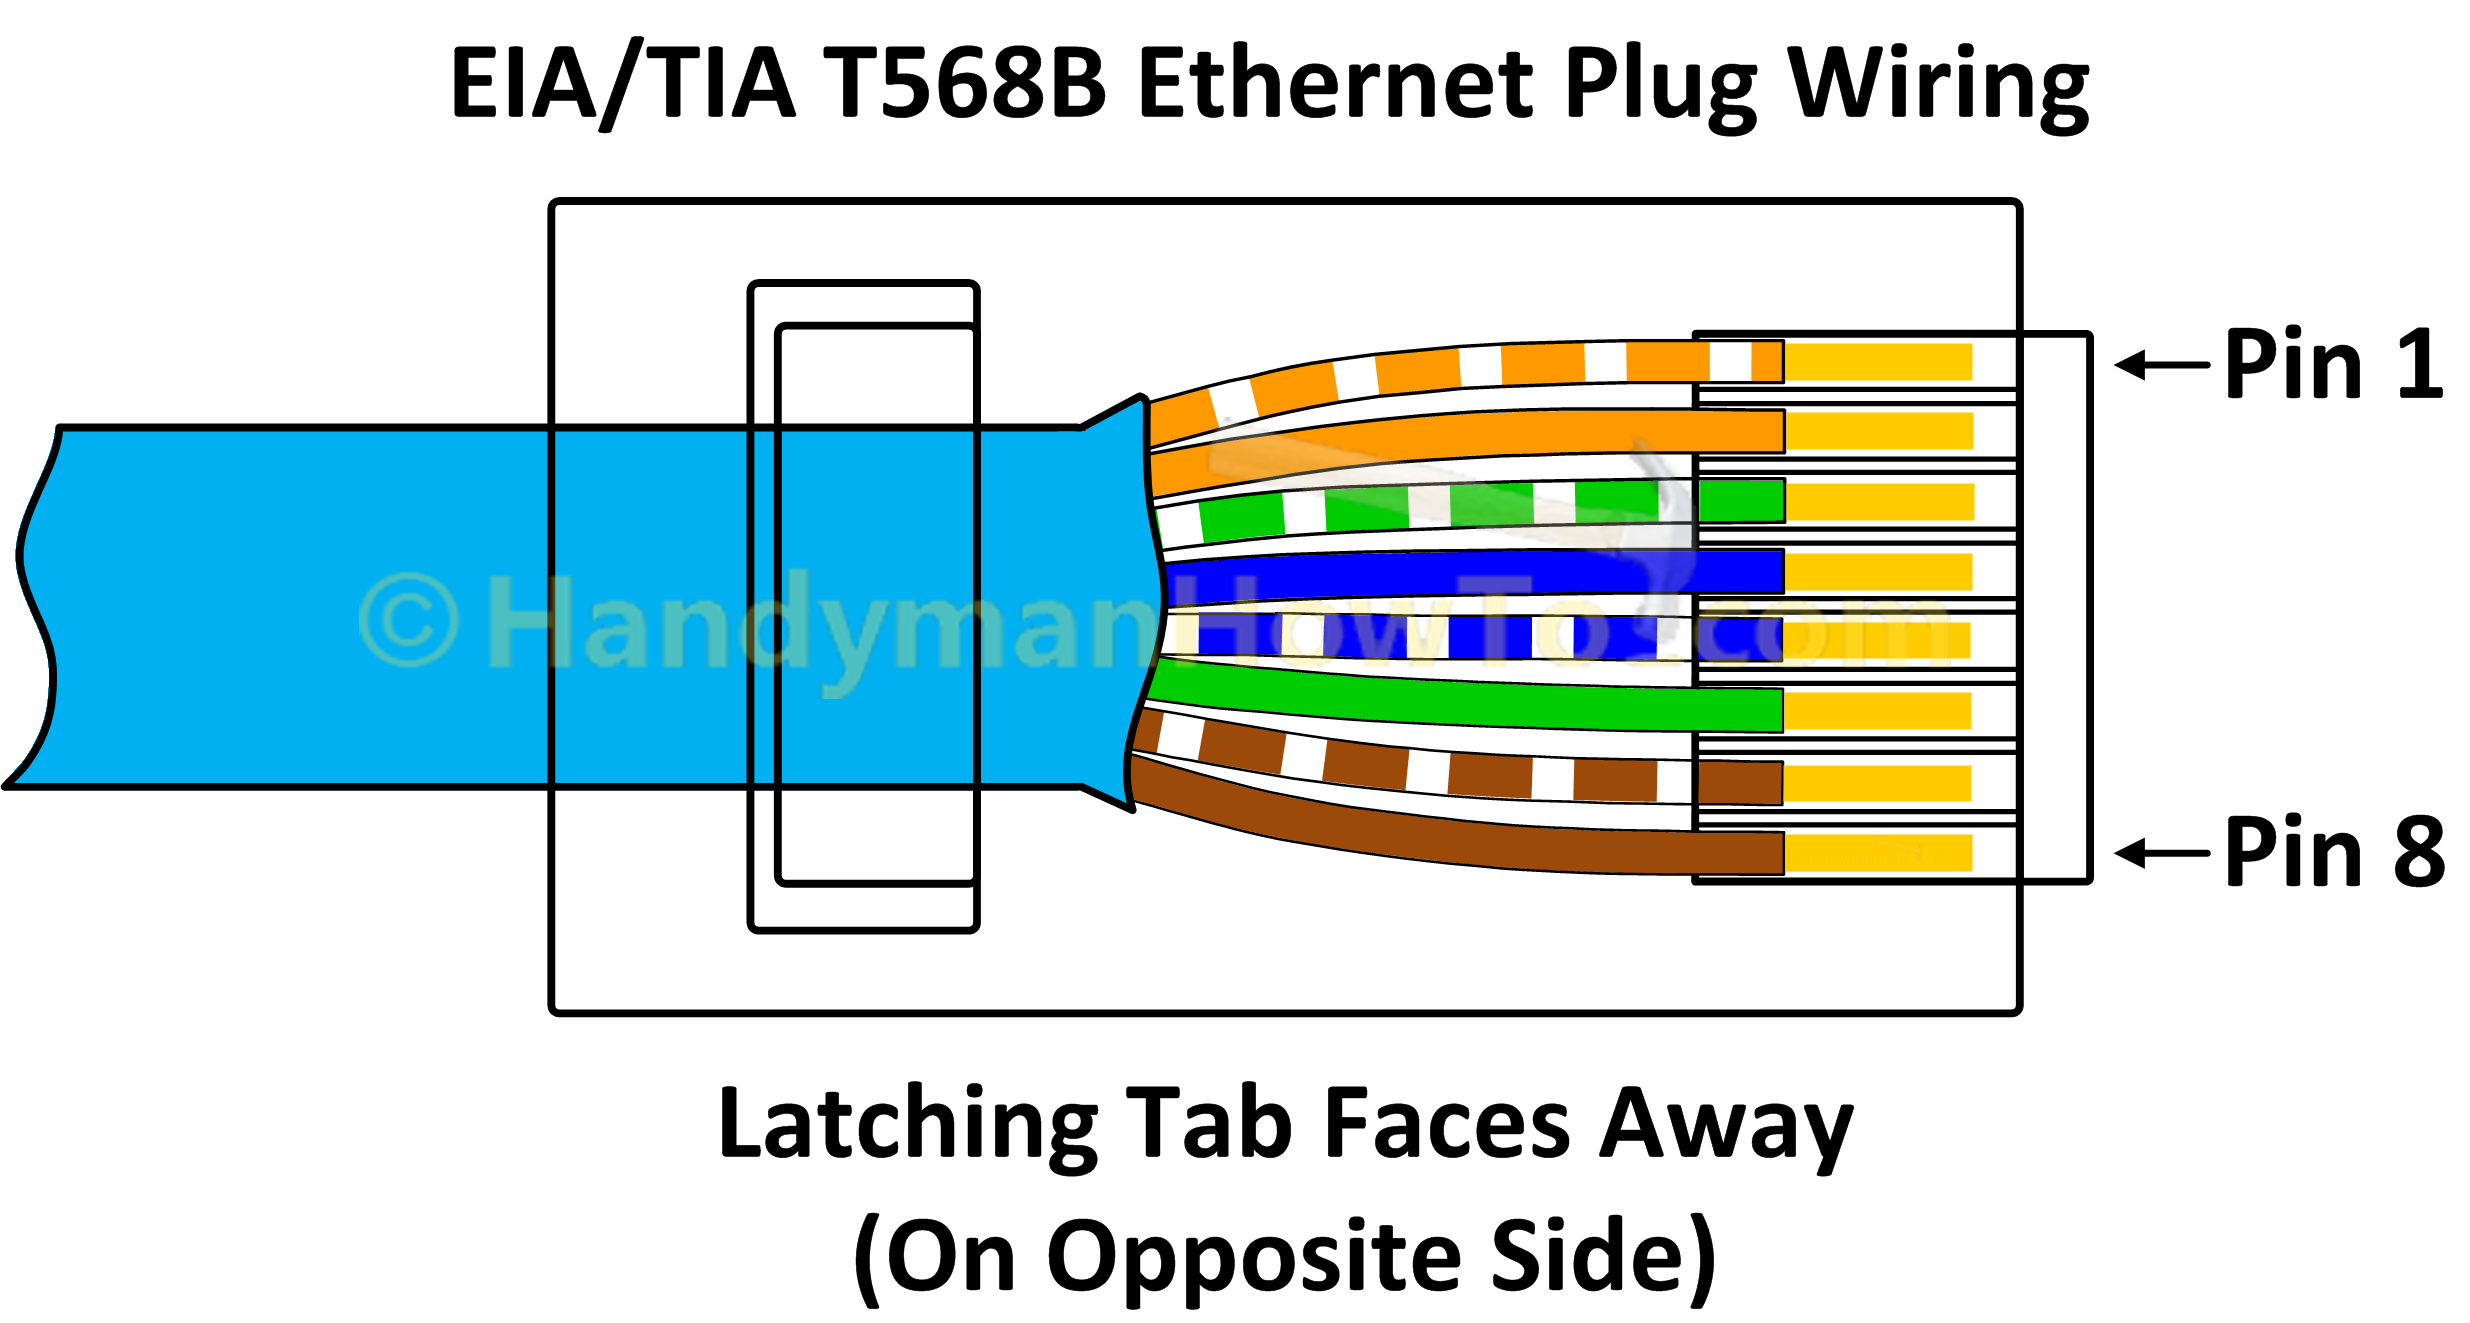 Wiring Diagram For A Cat5 Cable Valid Ieee 568b At Rj45